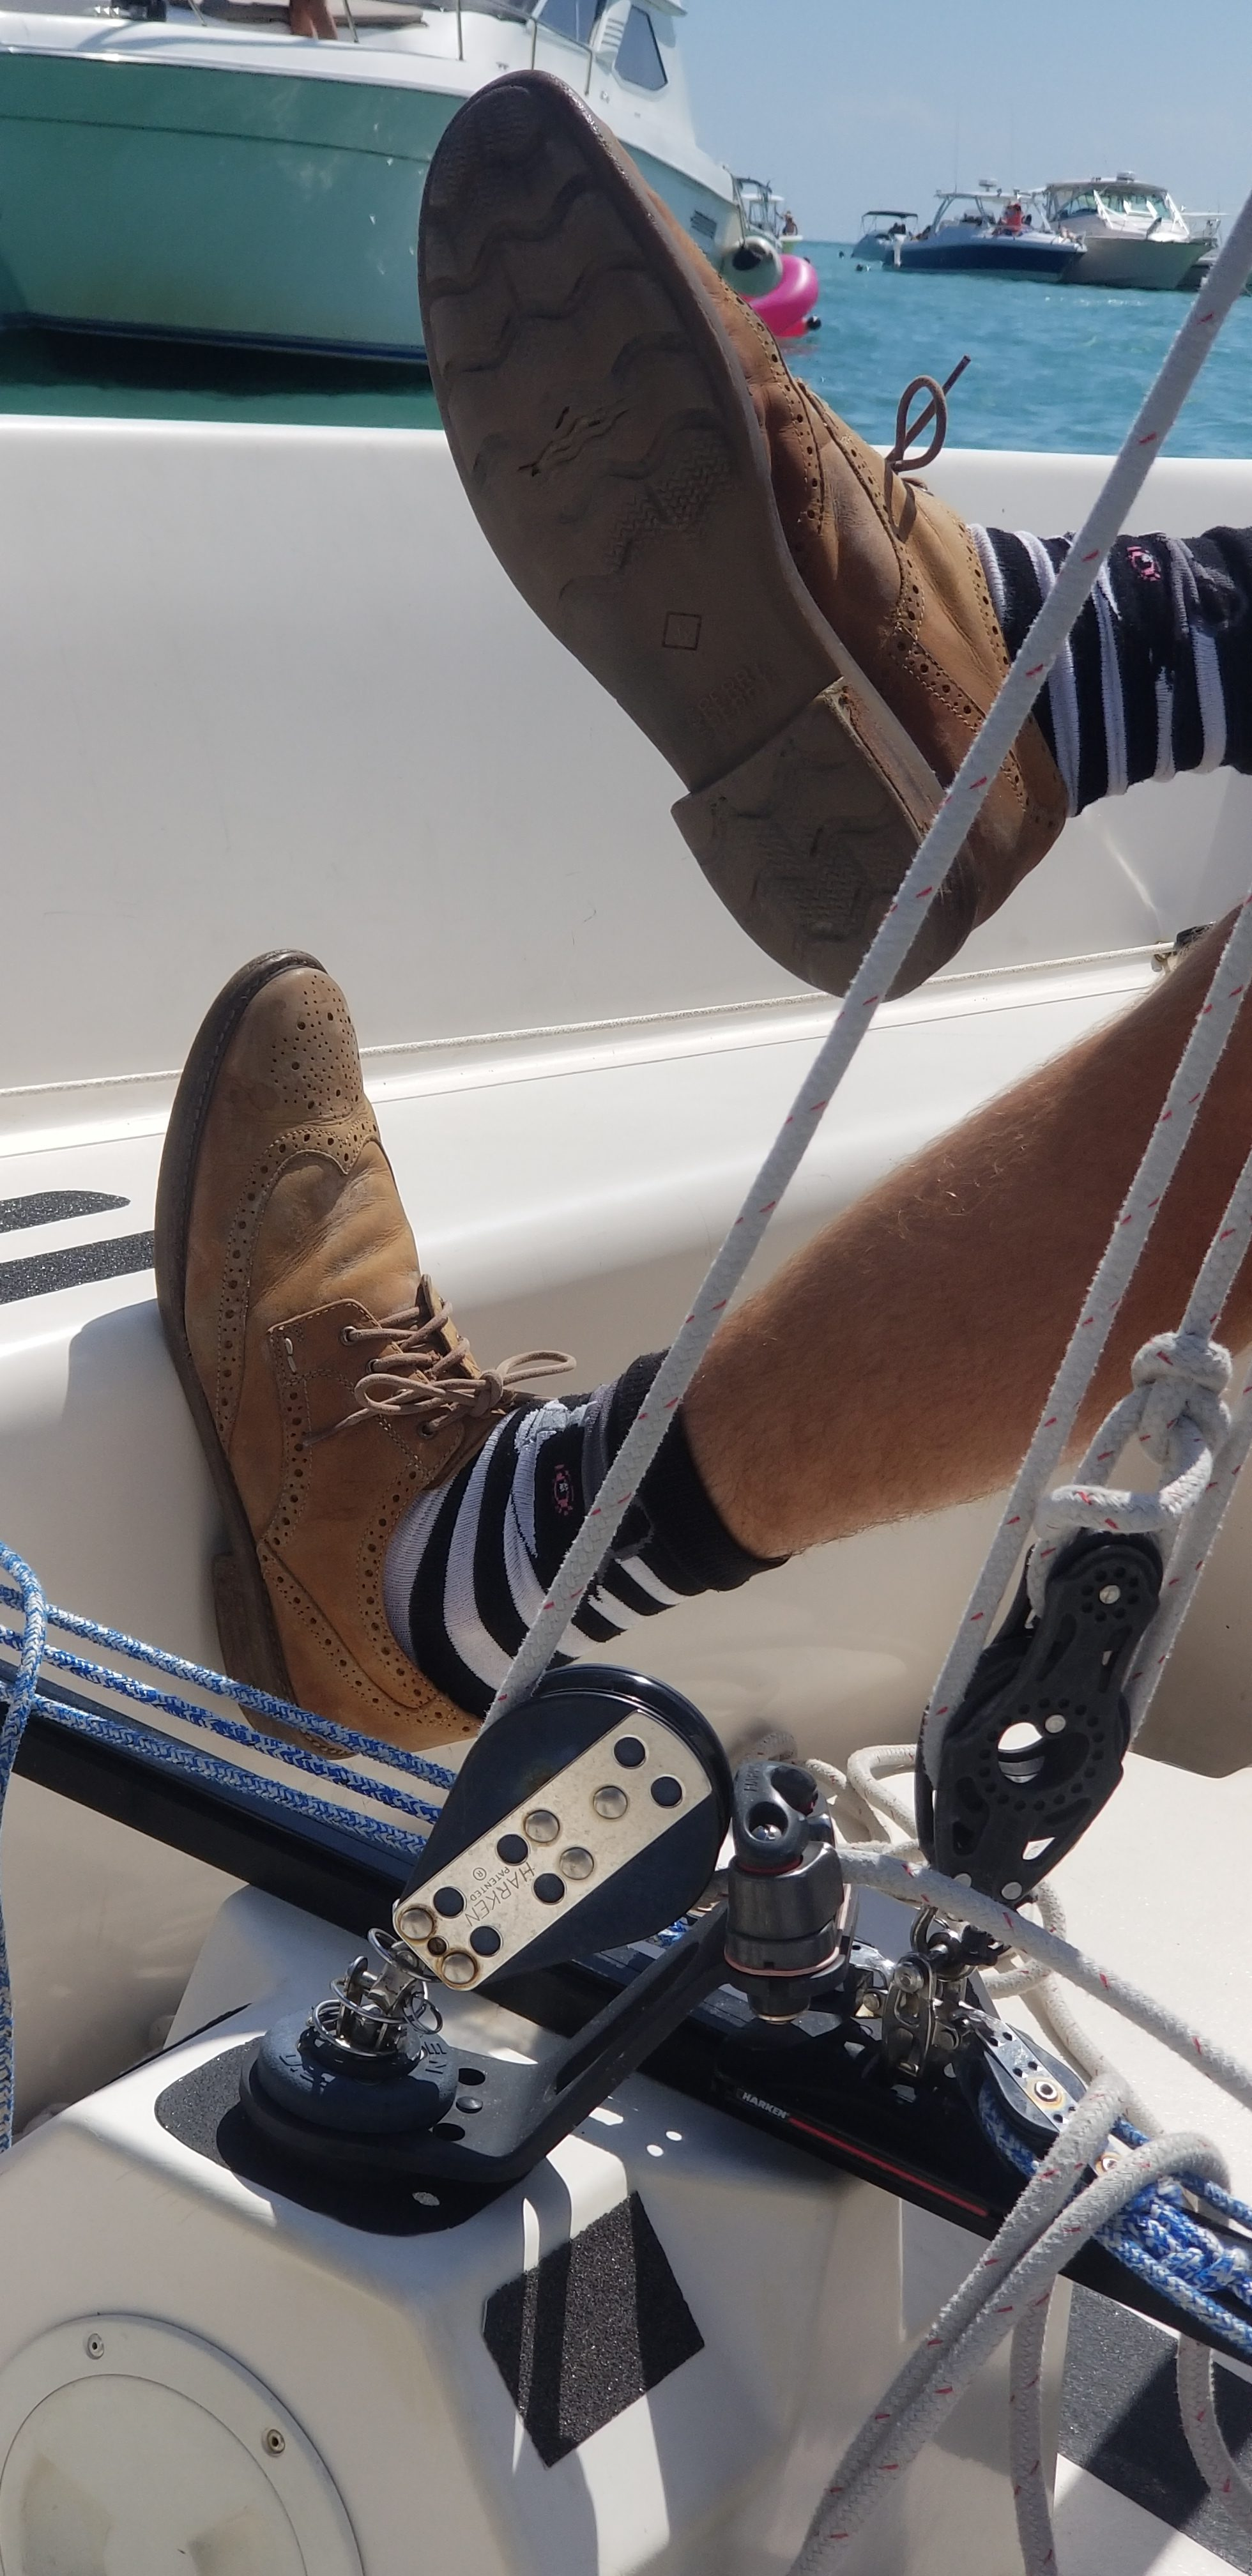 Luke Lawrence and his sperry's